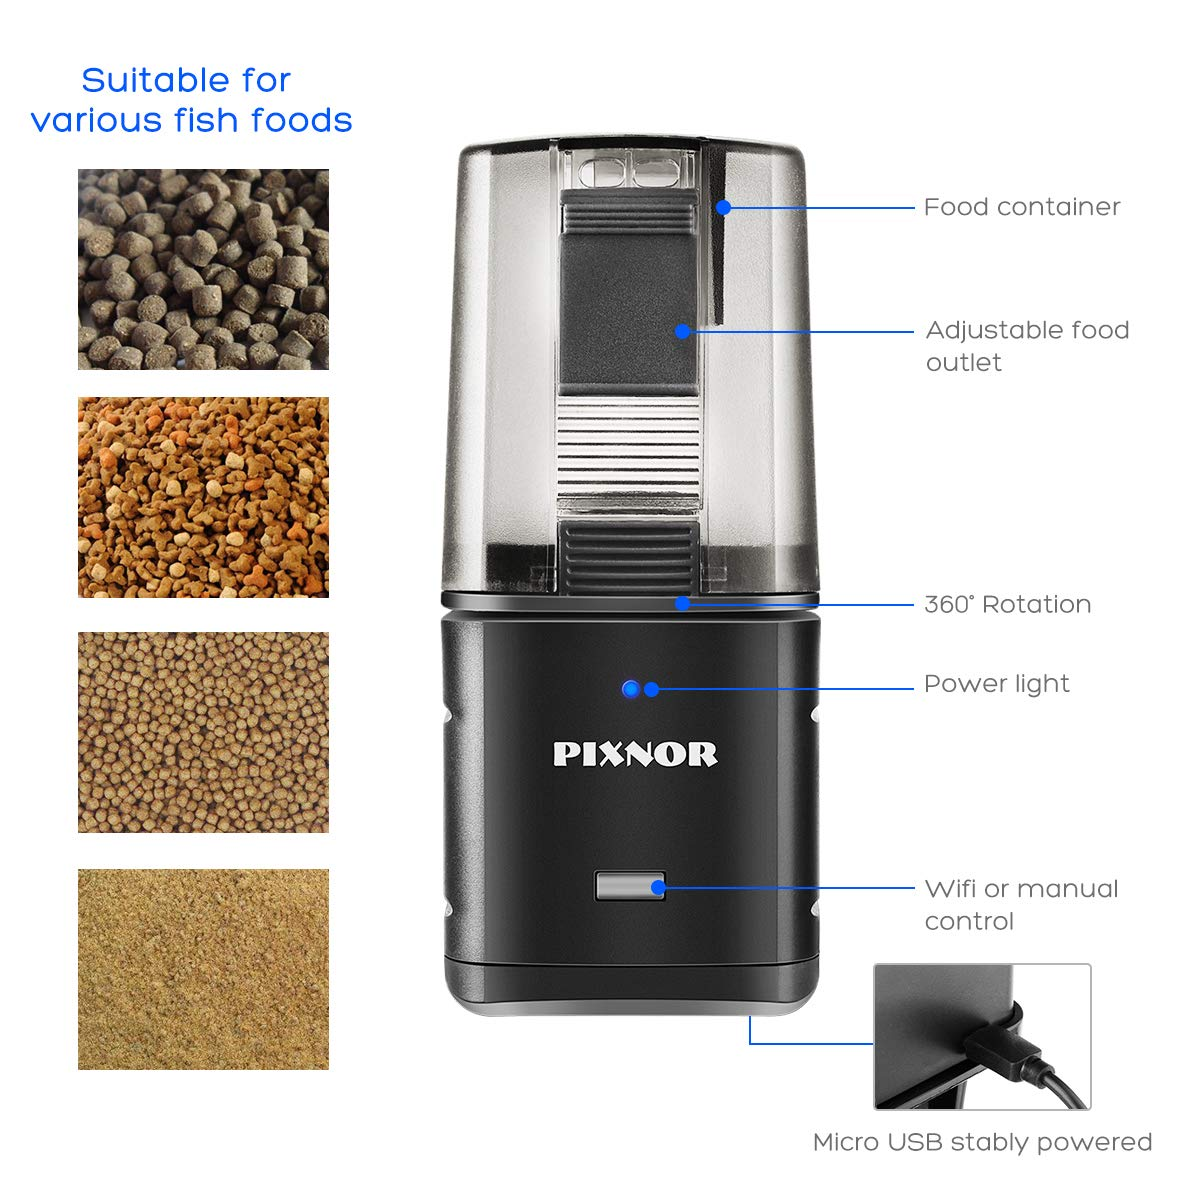 PIXNOR Automatic Fish Feeder Fish Food Dispenser Digital Feeding Unit for Aquarium Fish Tank (WiFi APP Remote Control and USB Powered) by PIXNOR (Image #2)